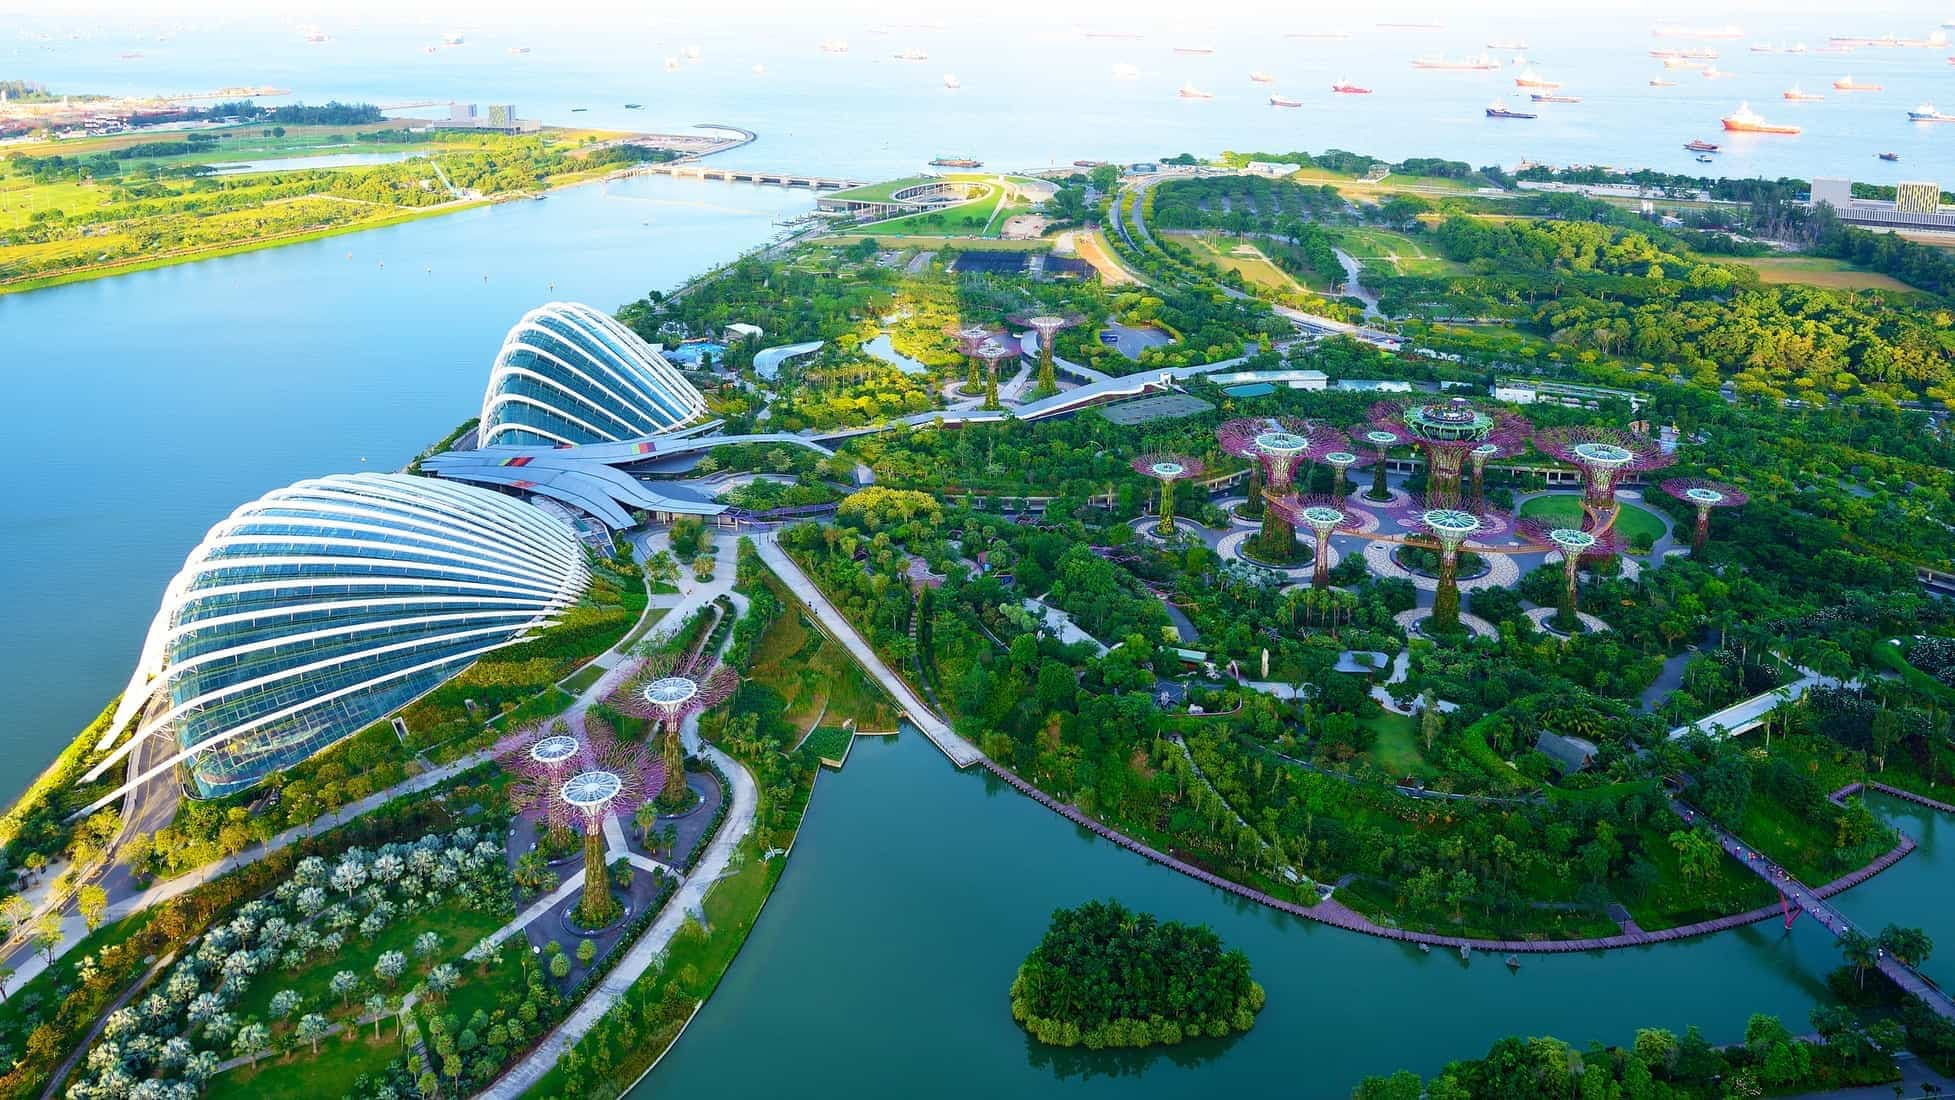 Singagapore green city overview. Aerial view of Garden by the Bay, Singapore